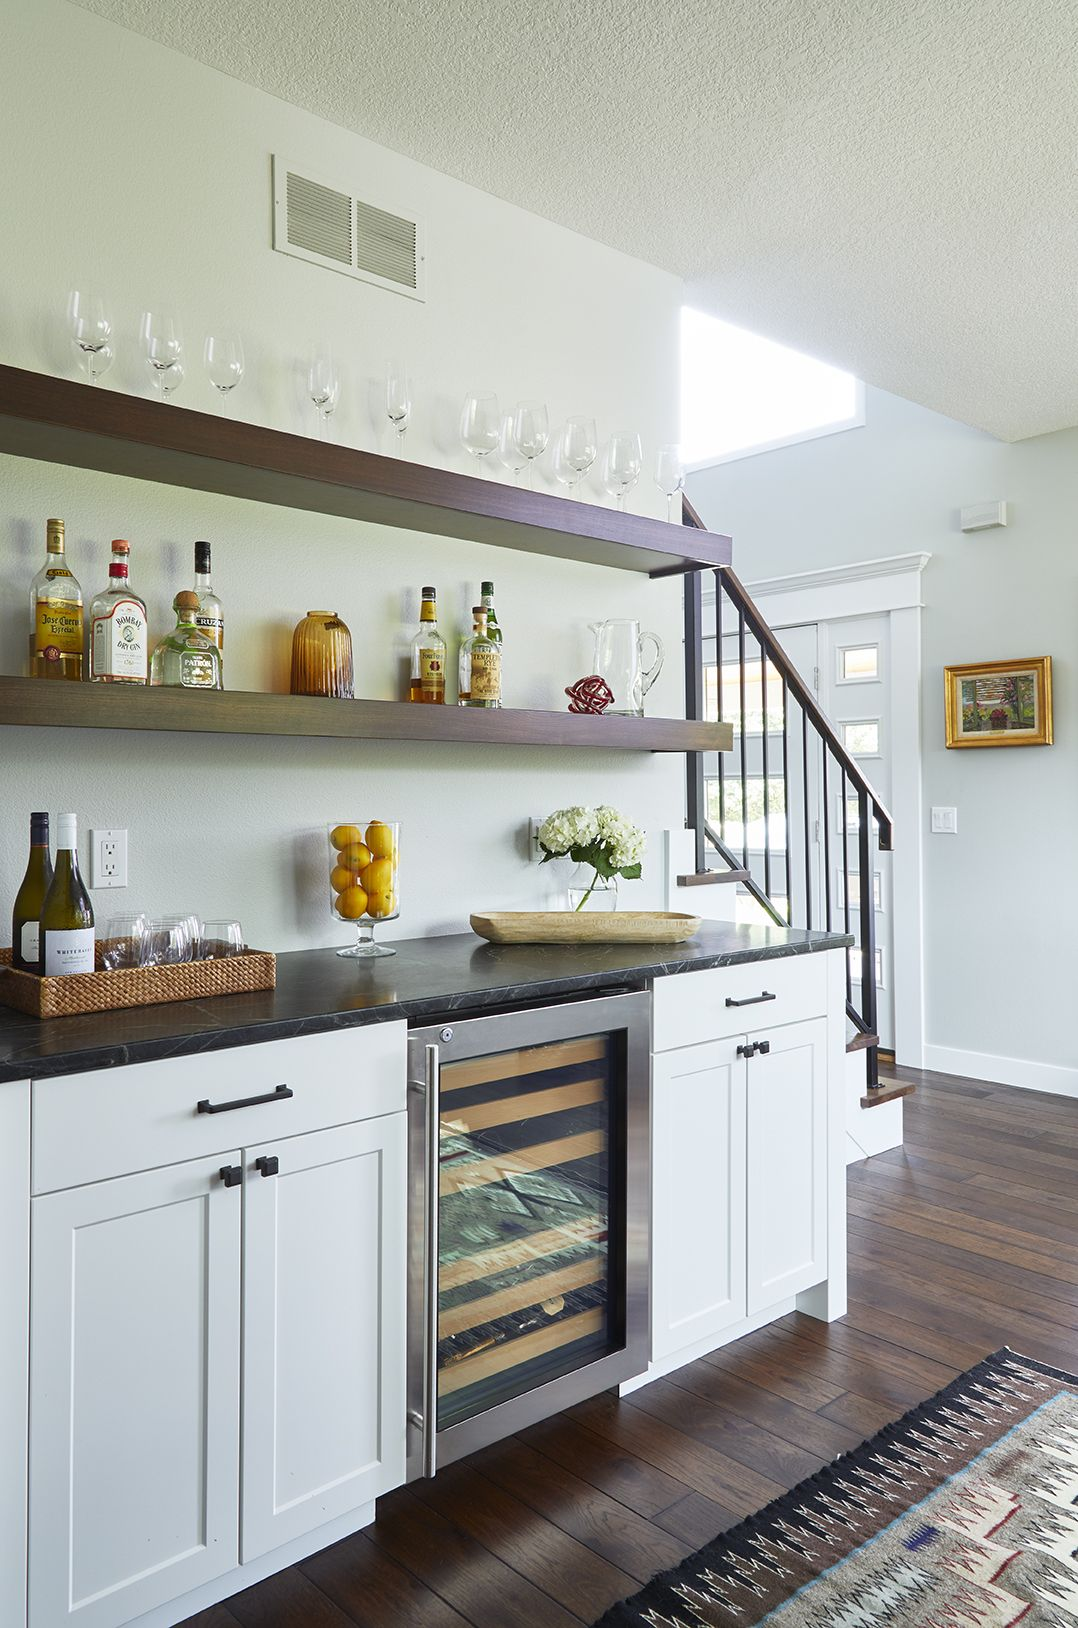 Merging Styles - Clean Lined Meets Rustic in This Grimes, Iowa Remodel images